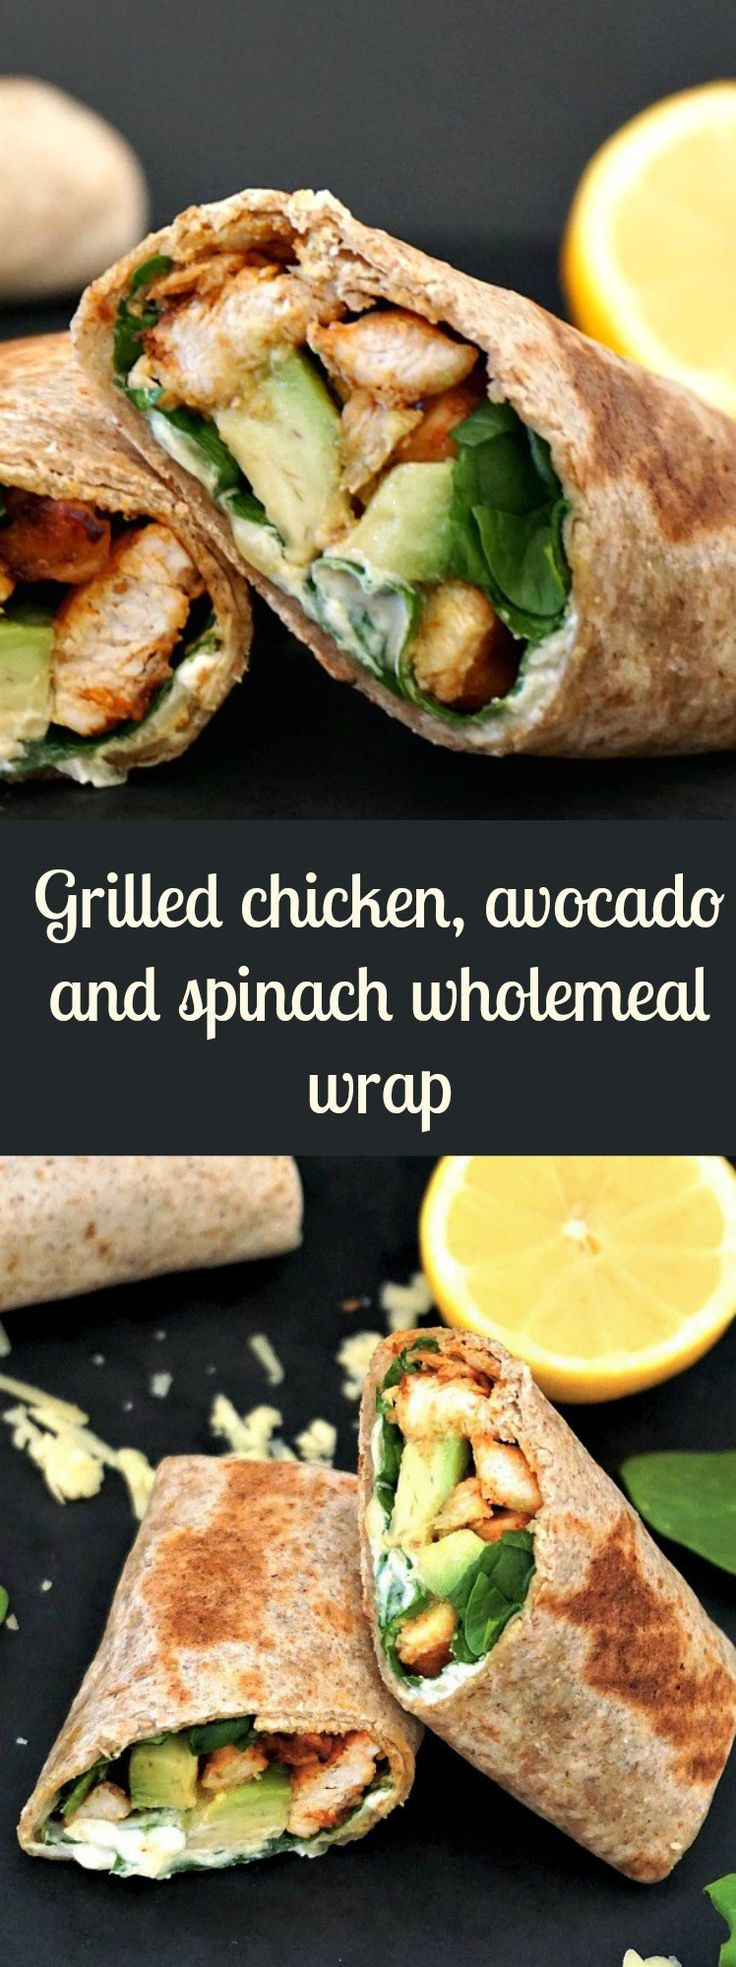 Grilled chicken, avocado and spinach wholemeal wrap, a healthy recipe when you are on the go or time is short for cooking